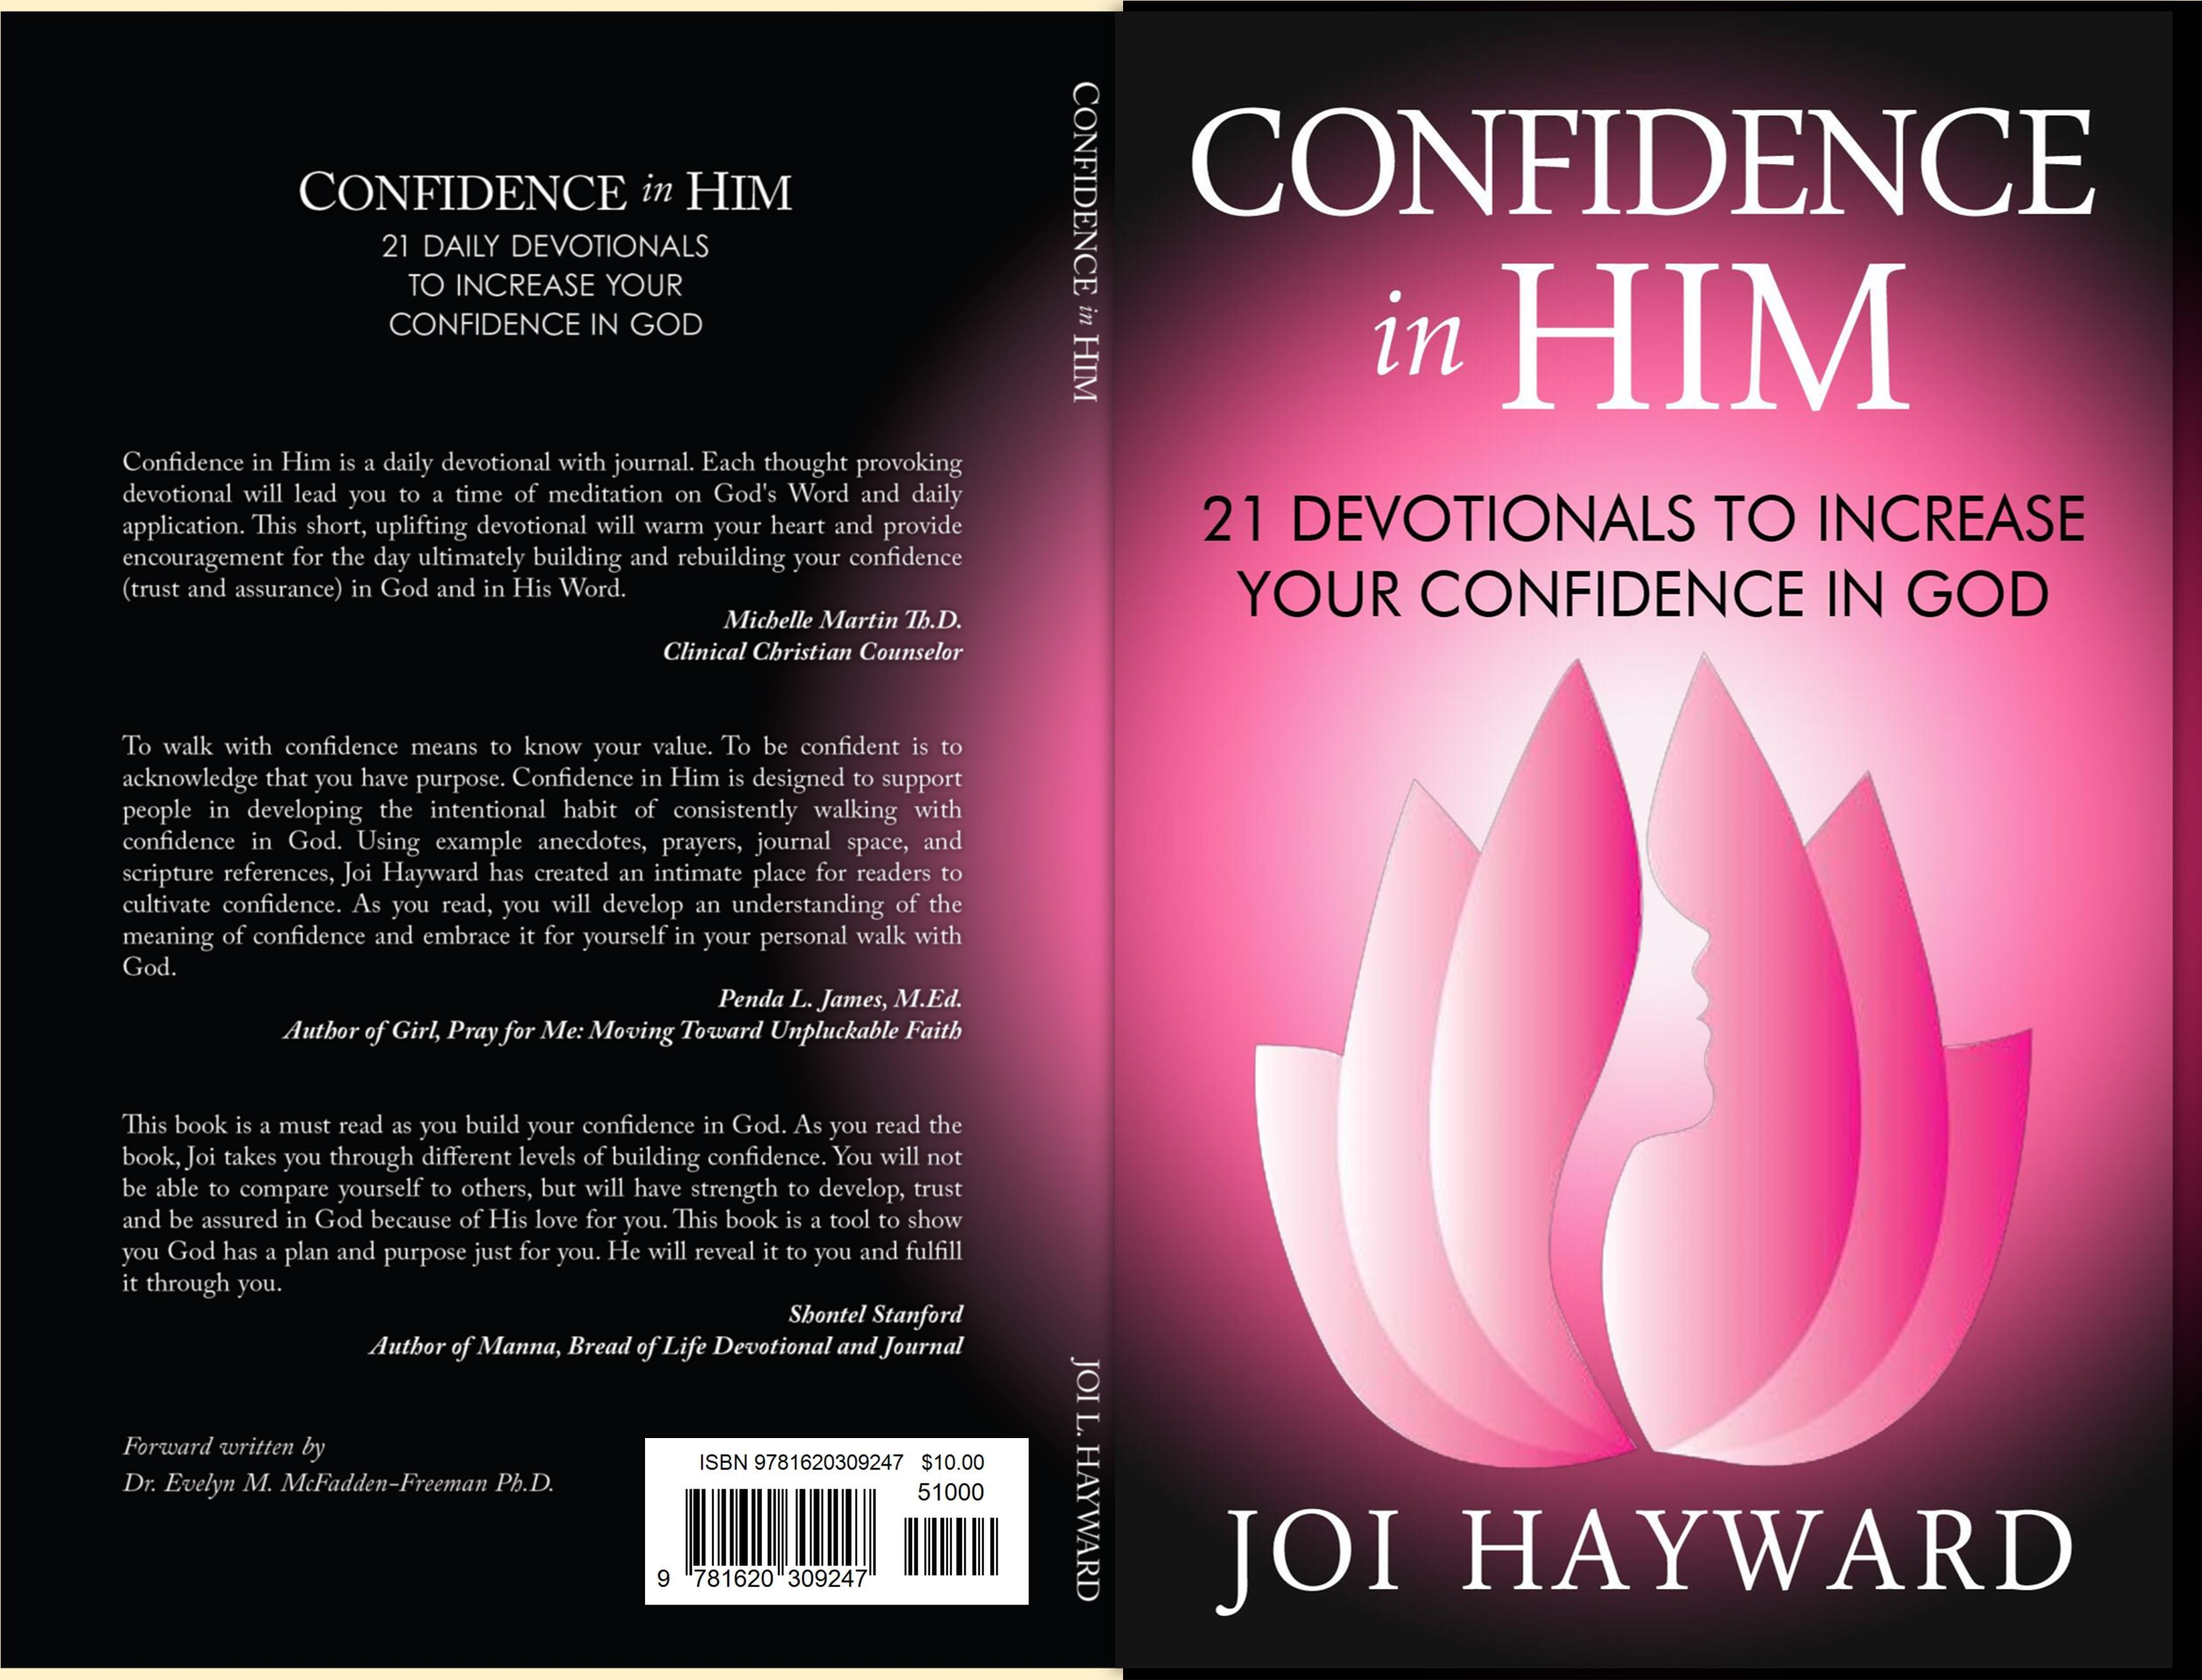 Confidence in HIM cover image